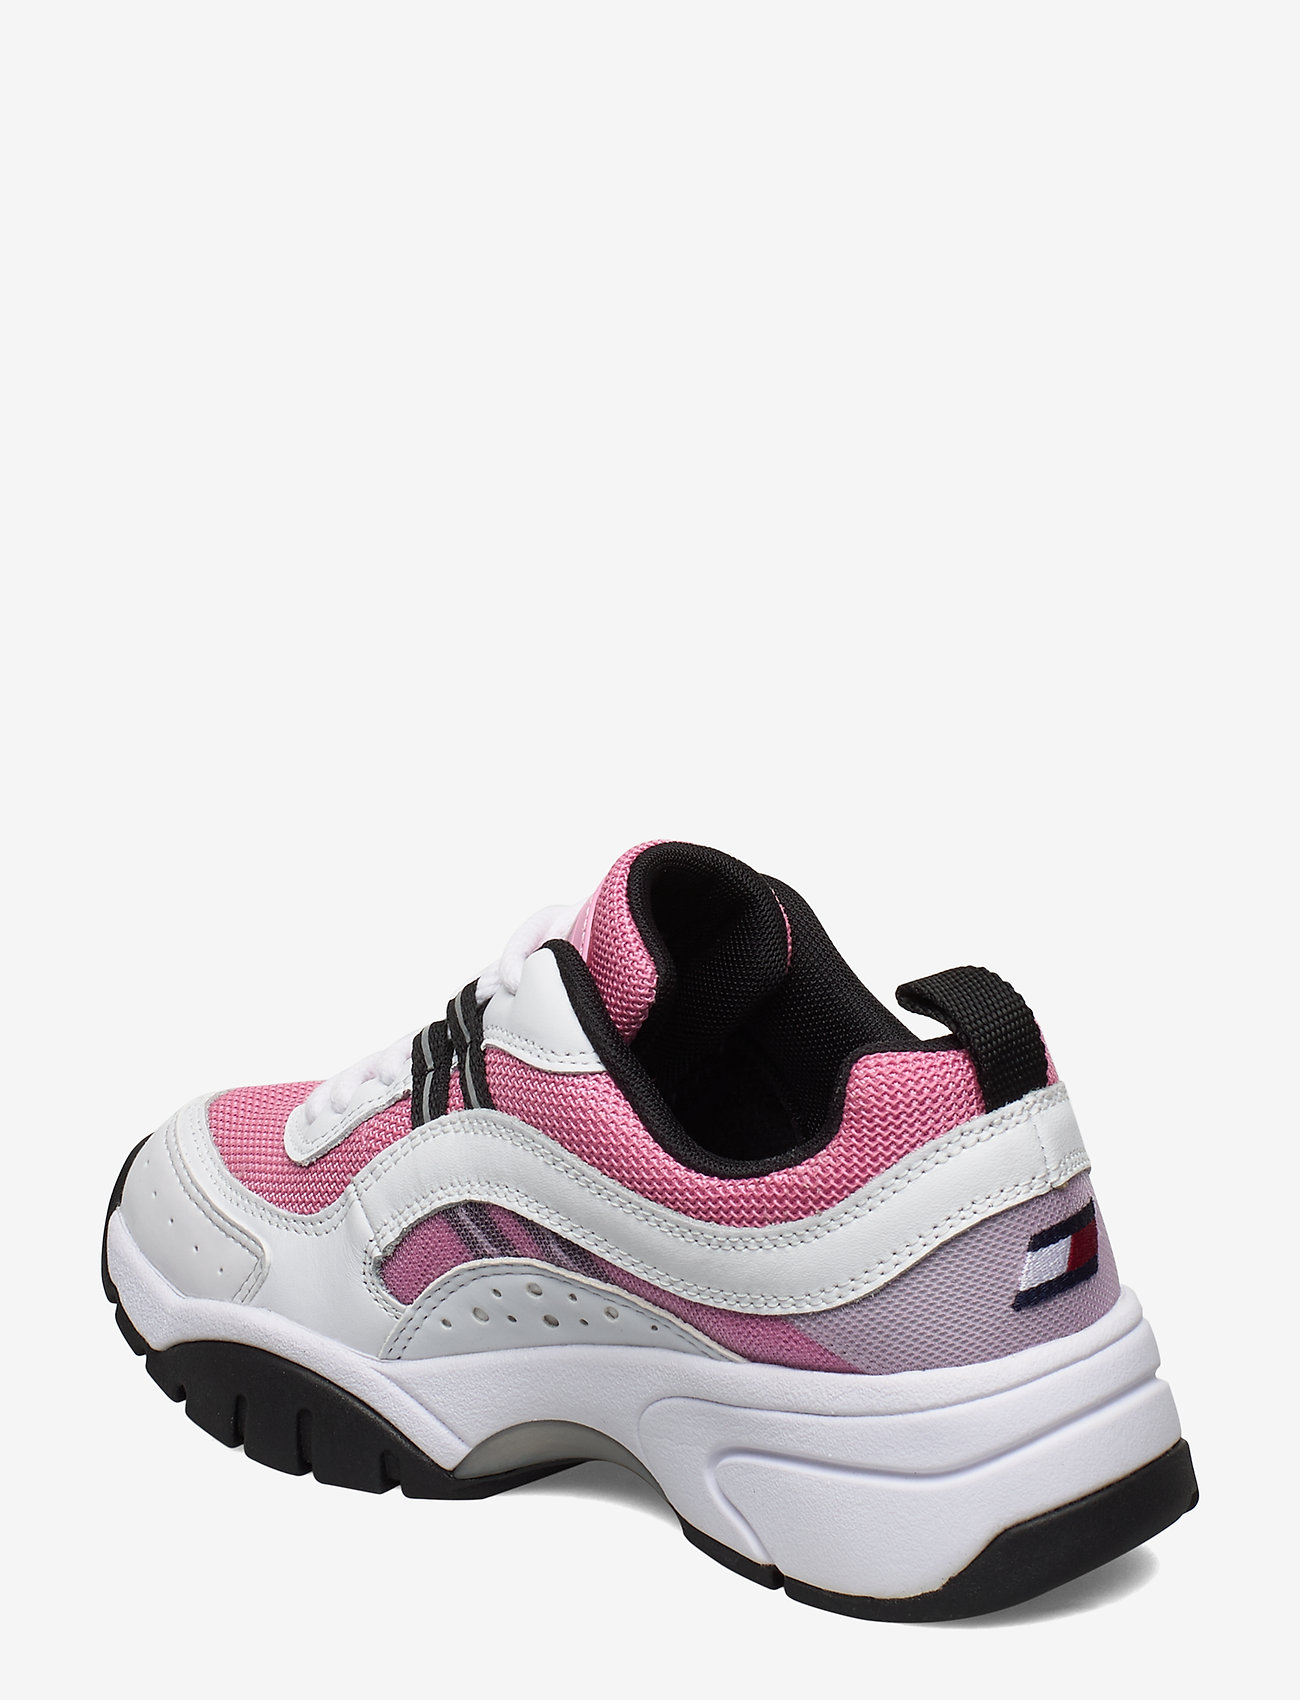 Heritage Thj Jeans Wmns Runner (Bubble Pink) - Tommy Hilfiger